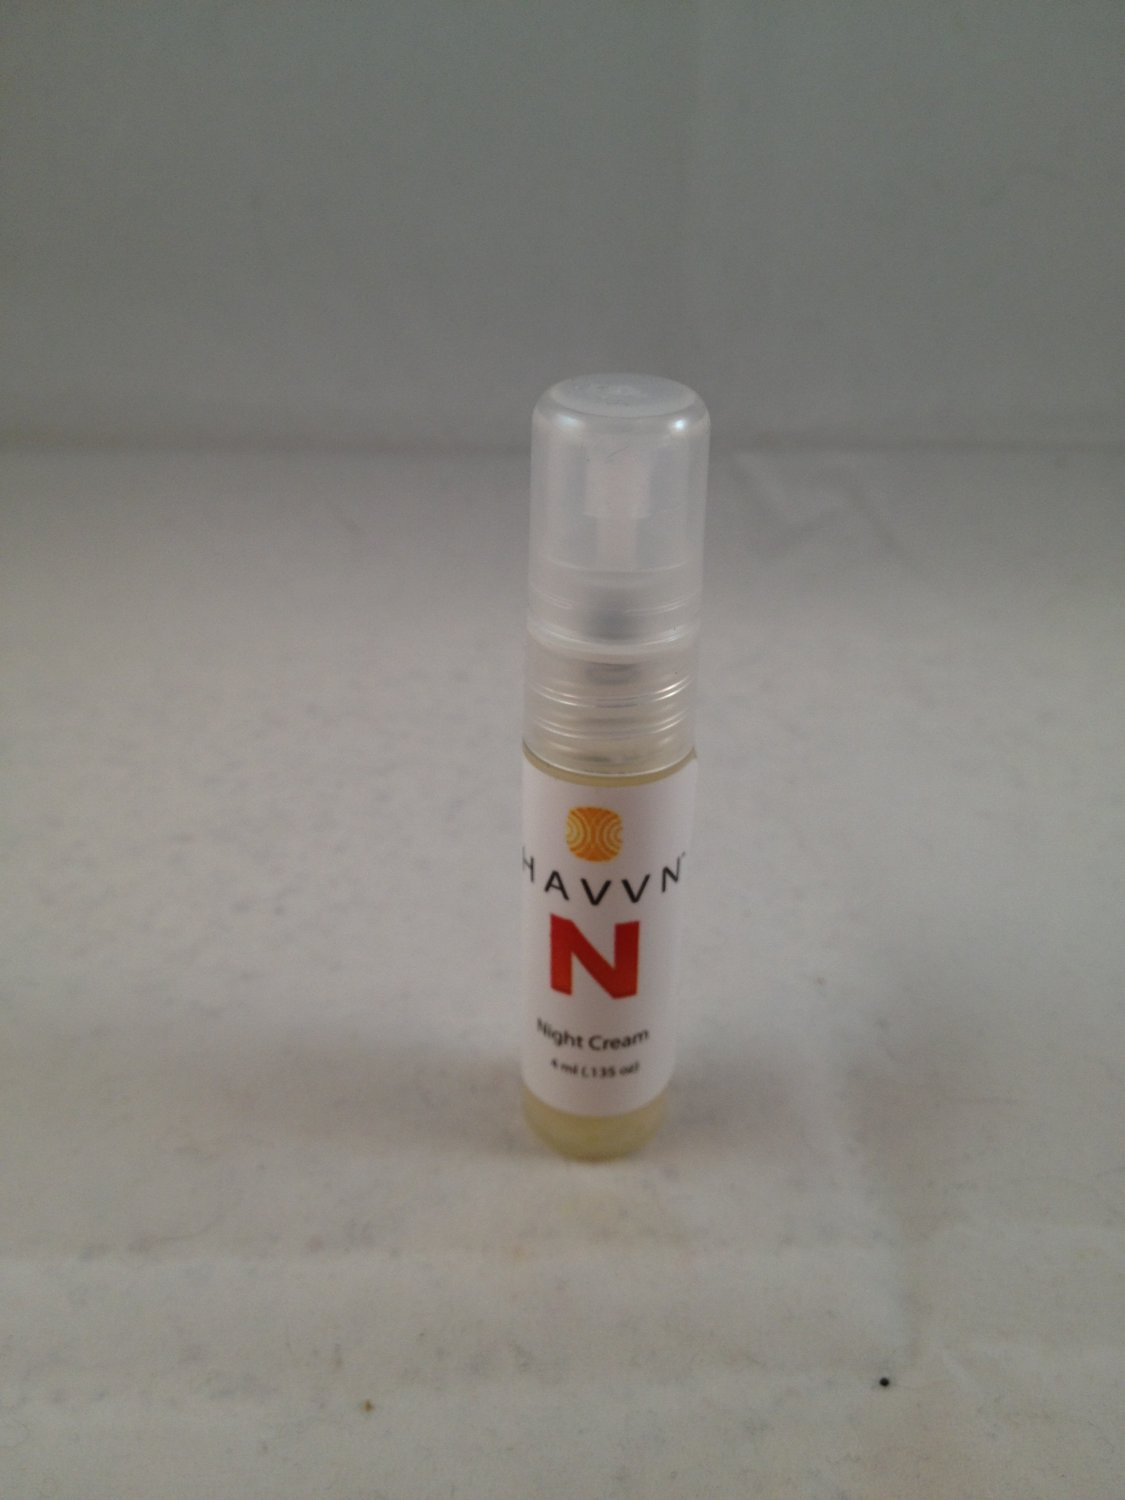 The HAVVN DNA System N Night Cream travel size